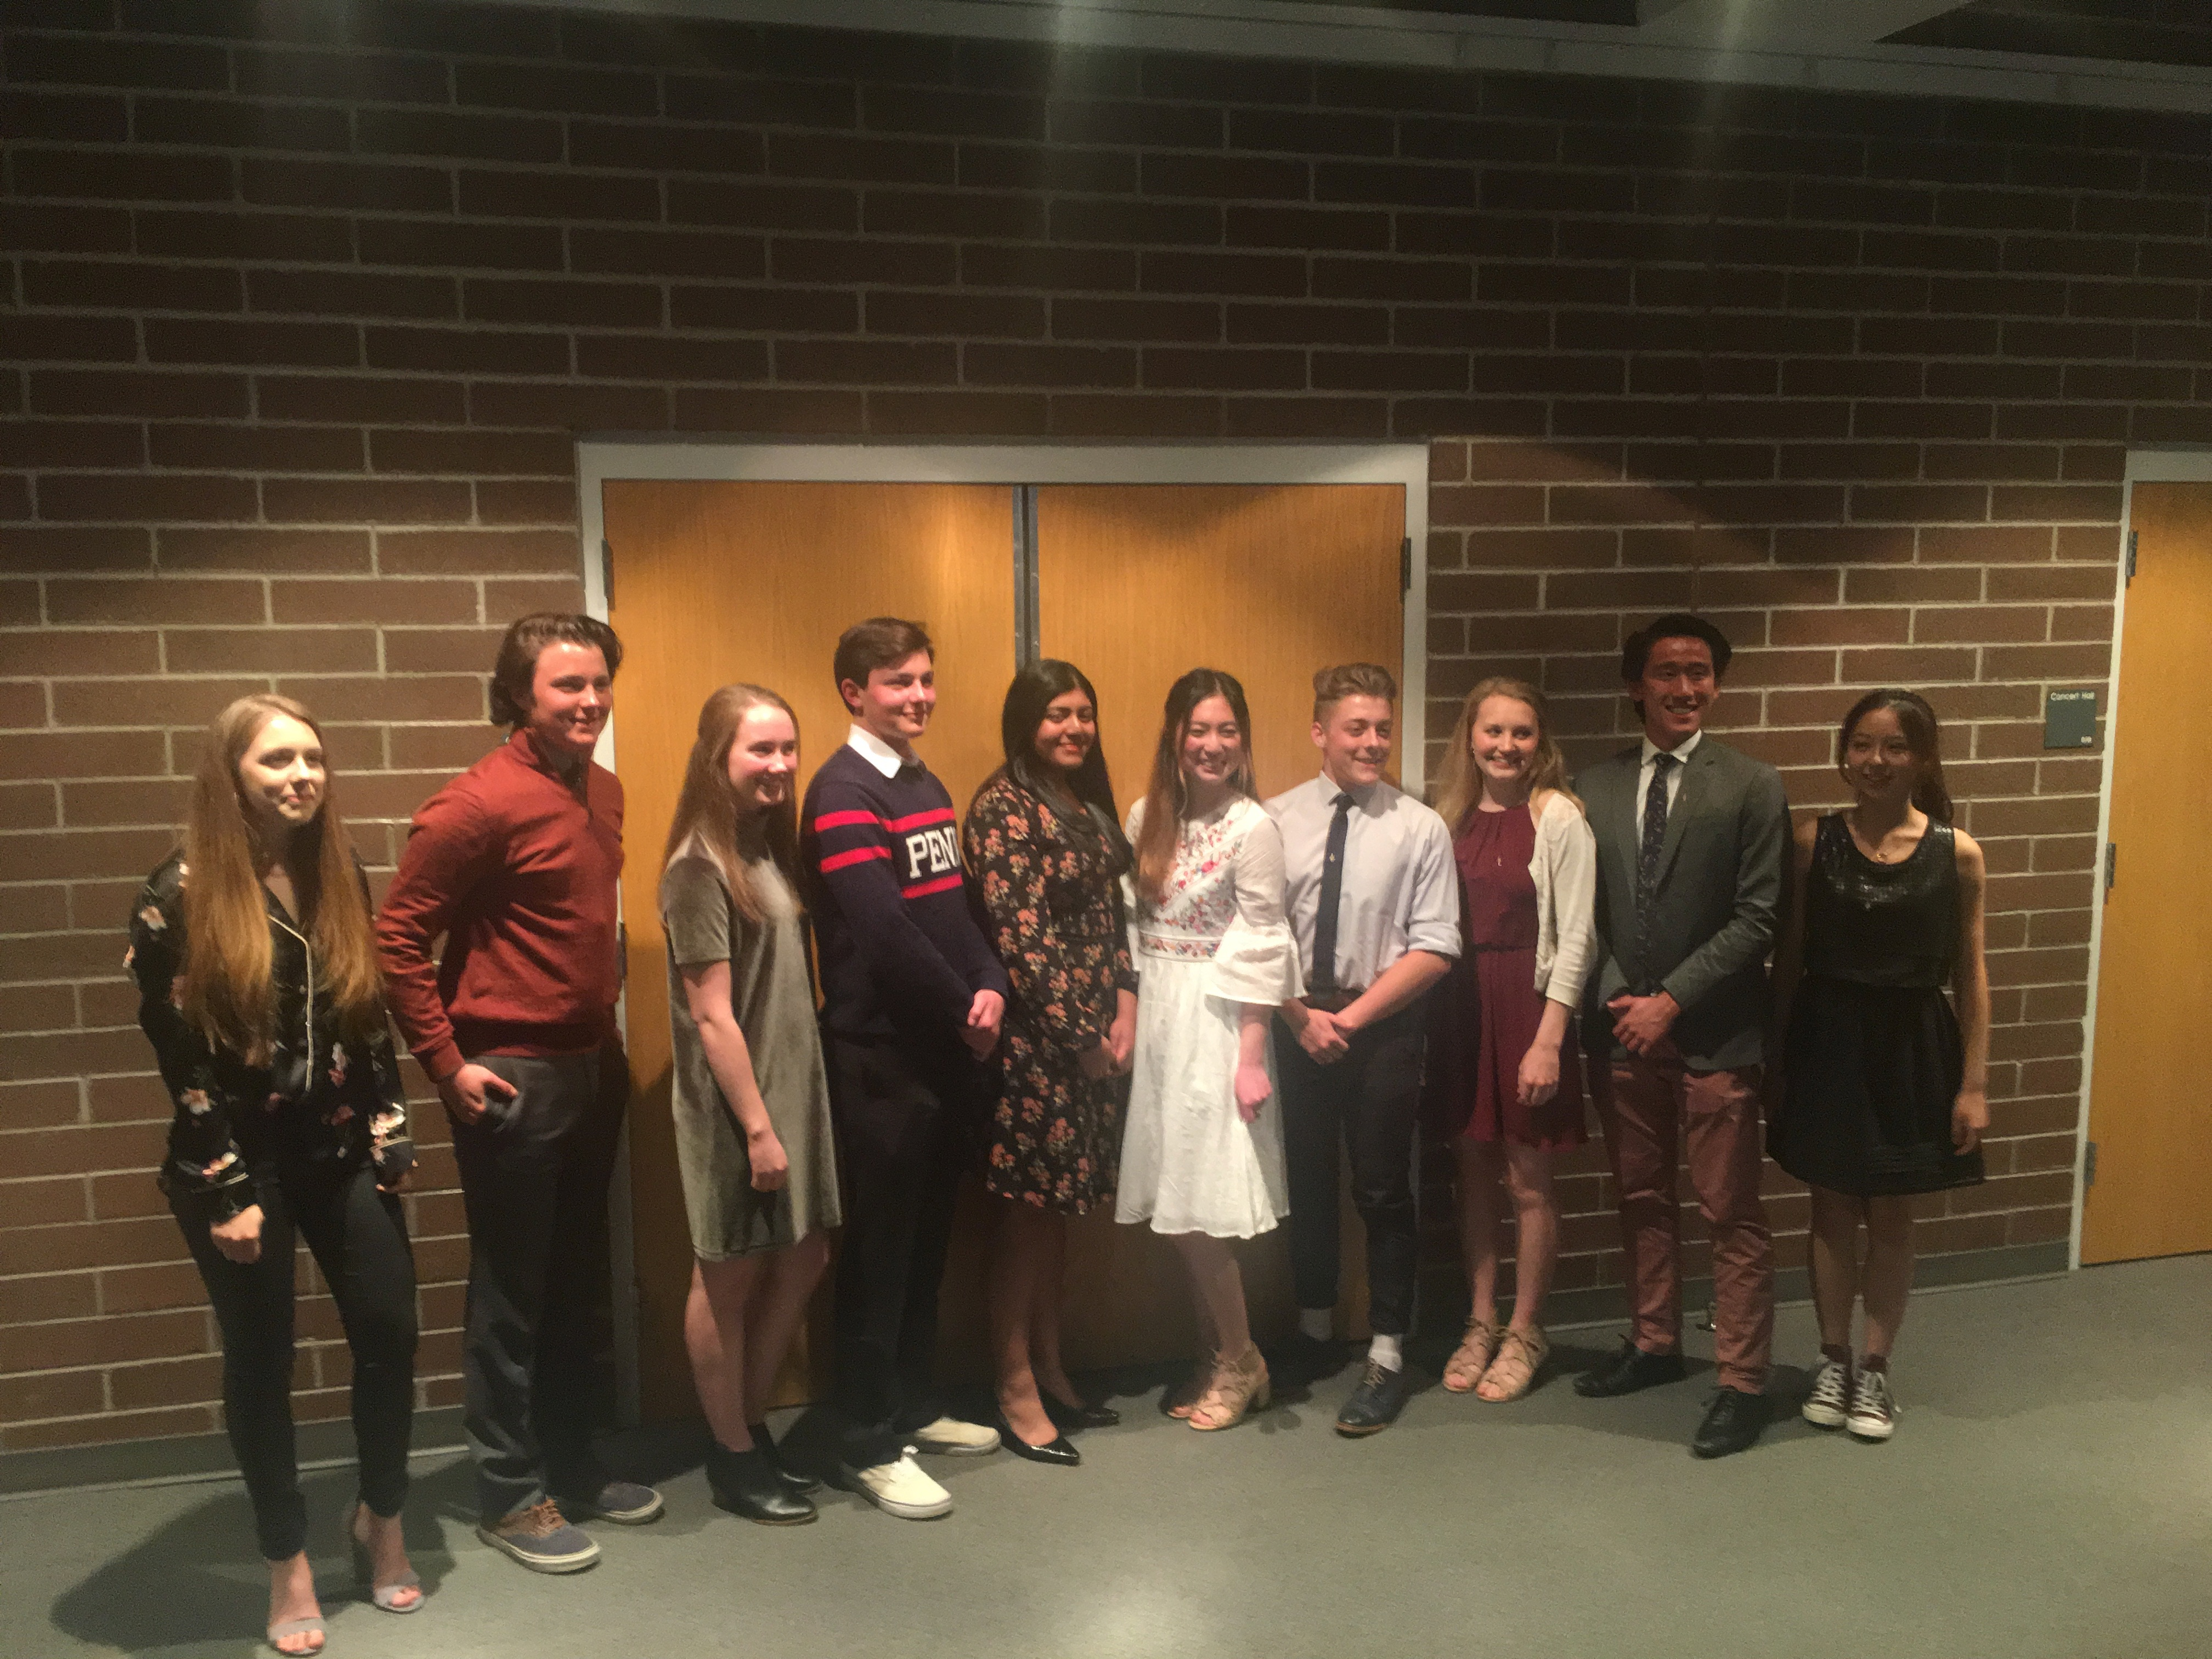 Ten members of the Waterford Class of 2018 were inducted into the Cum Laude society. Waterford School is the only member of the Cum Laude Society.